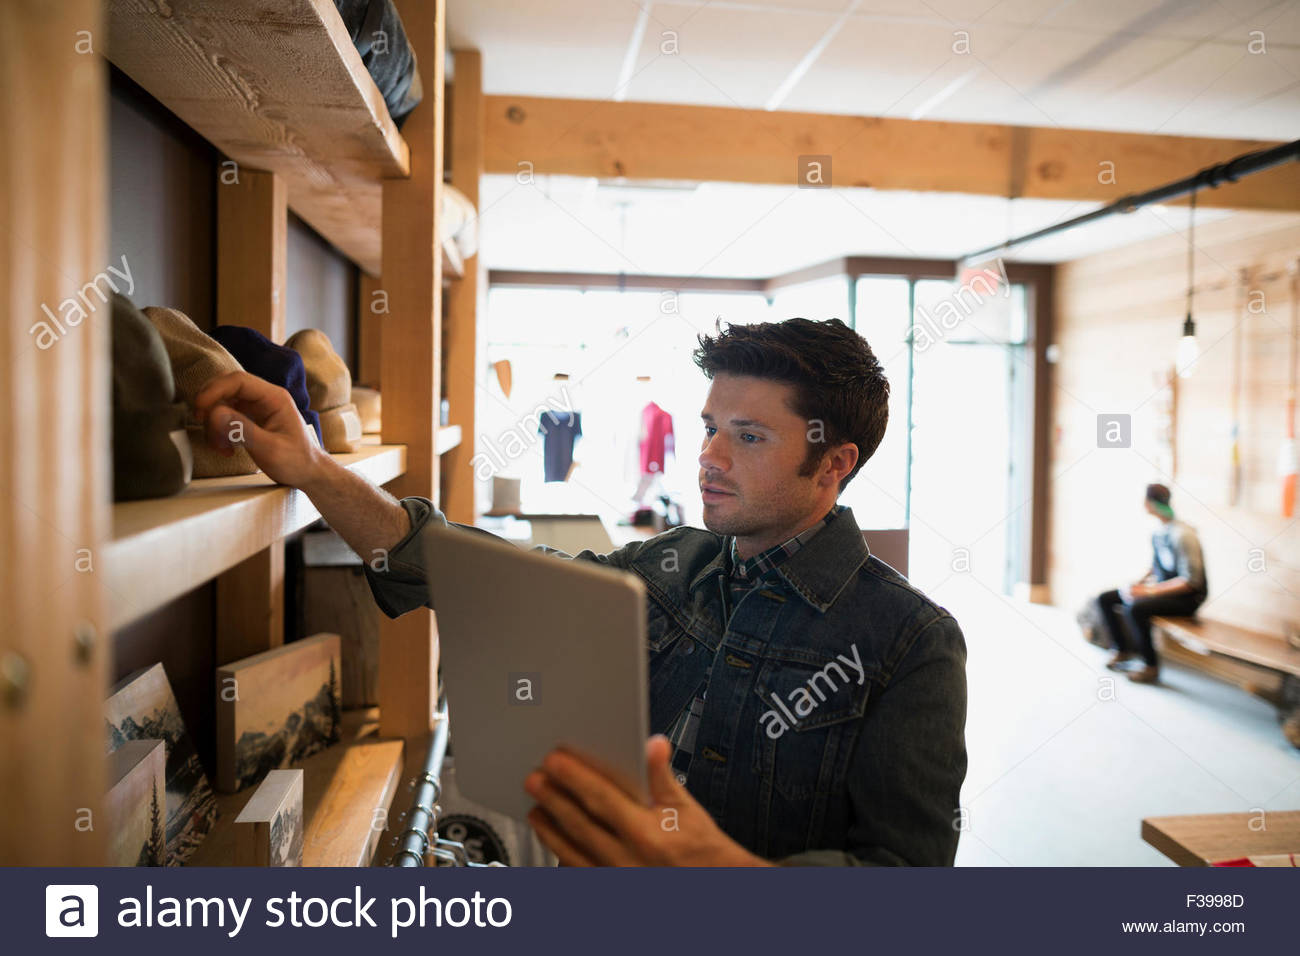 Worker with digital tablet in shop - Stock Image